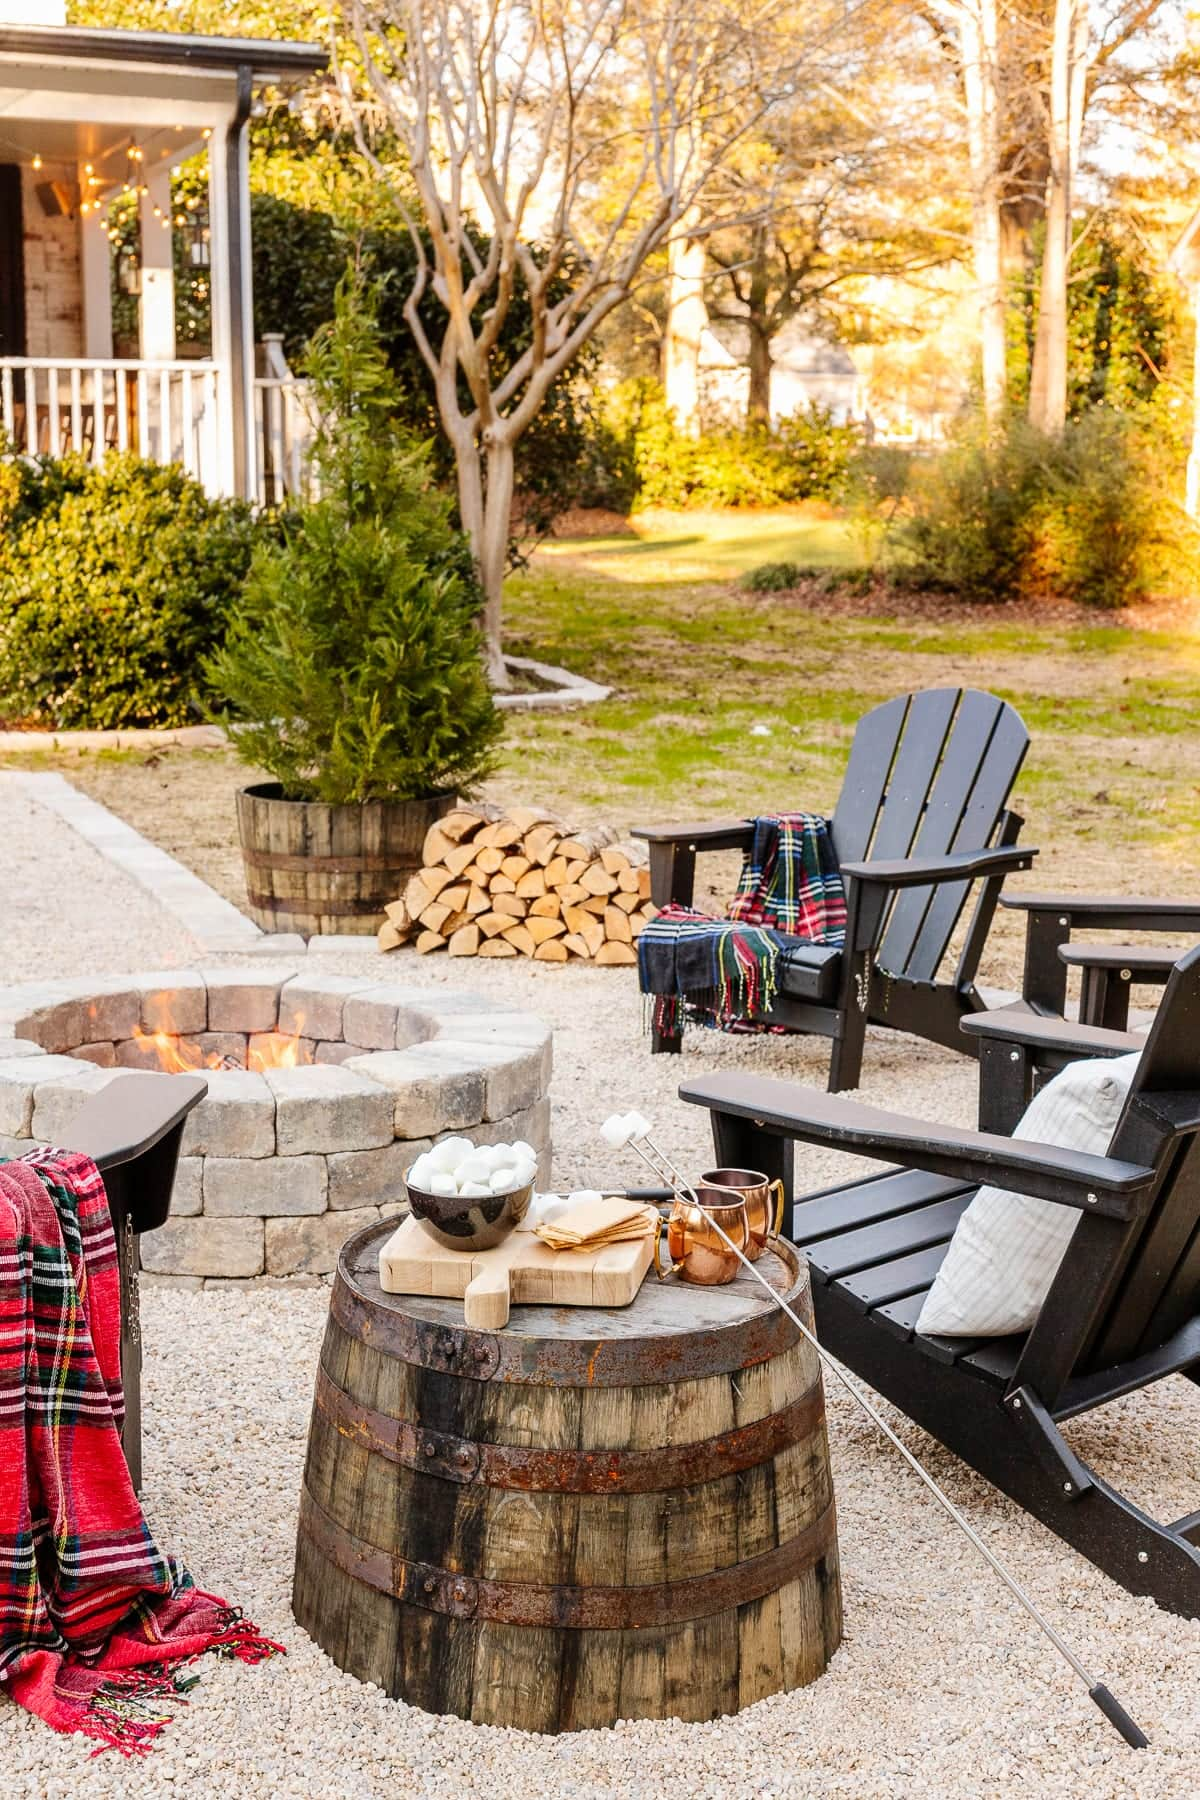 stone fire pit with pea gravel, stone edgers, and adirondack chairs with barrel planter for a side table